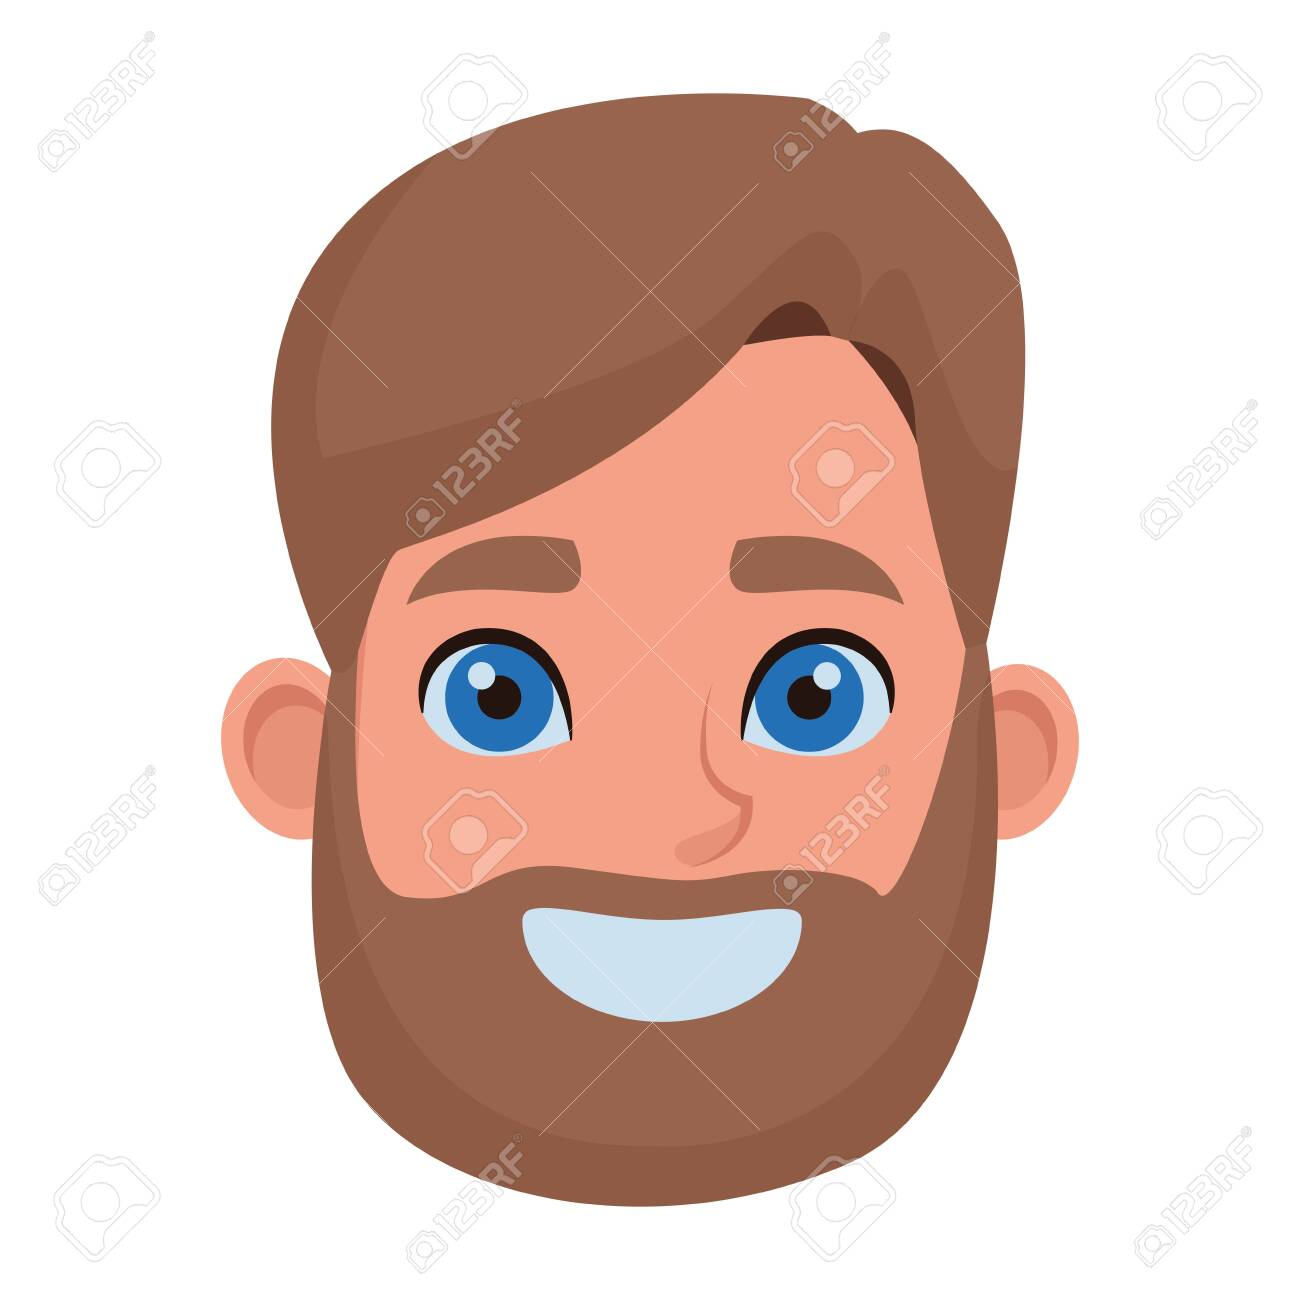 Man With Beard And Blue Eyes Profile Picture Avatar Cartoon